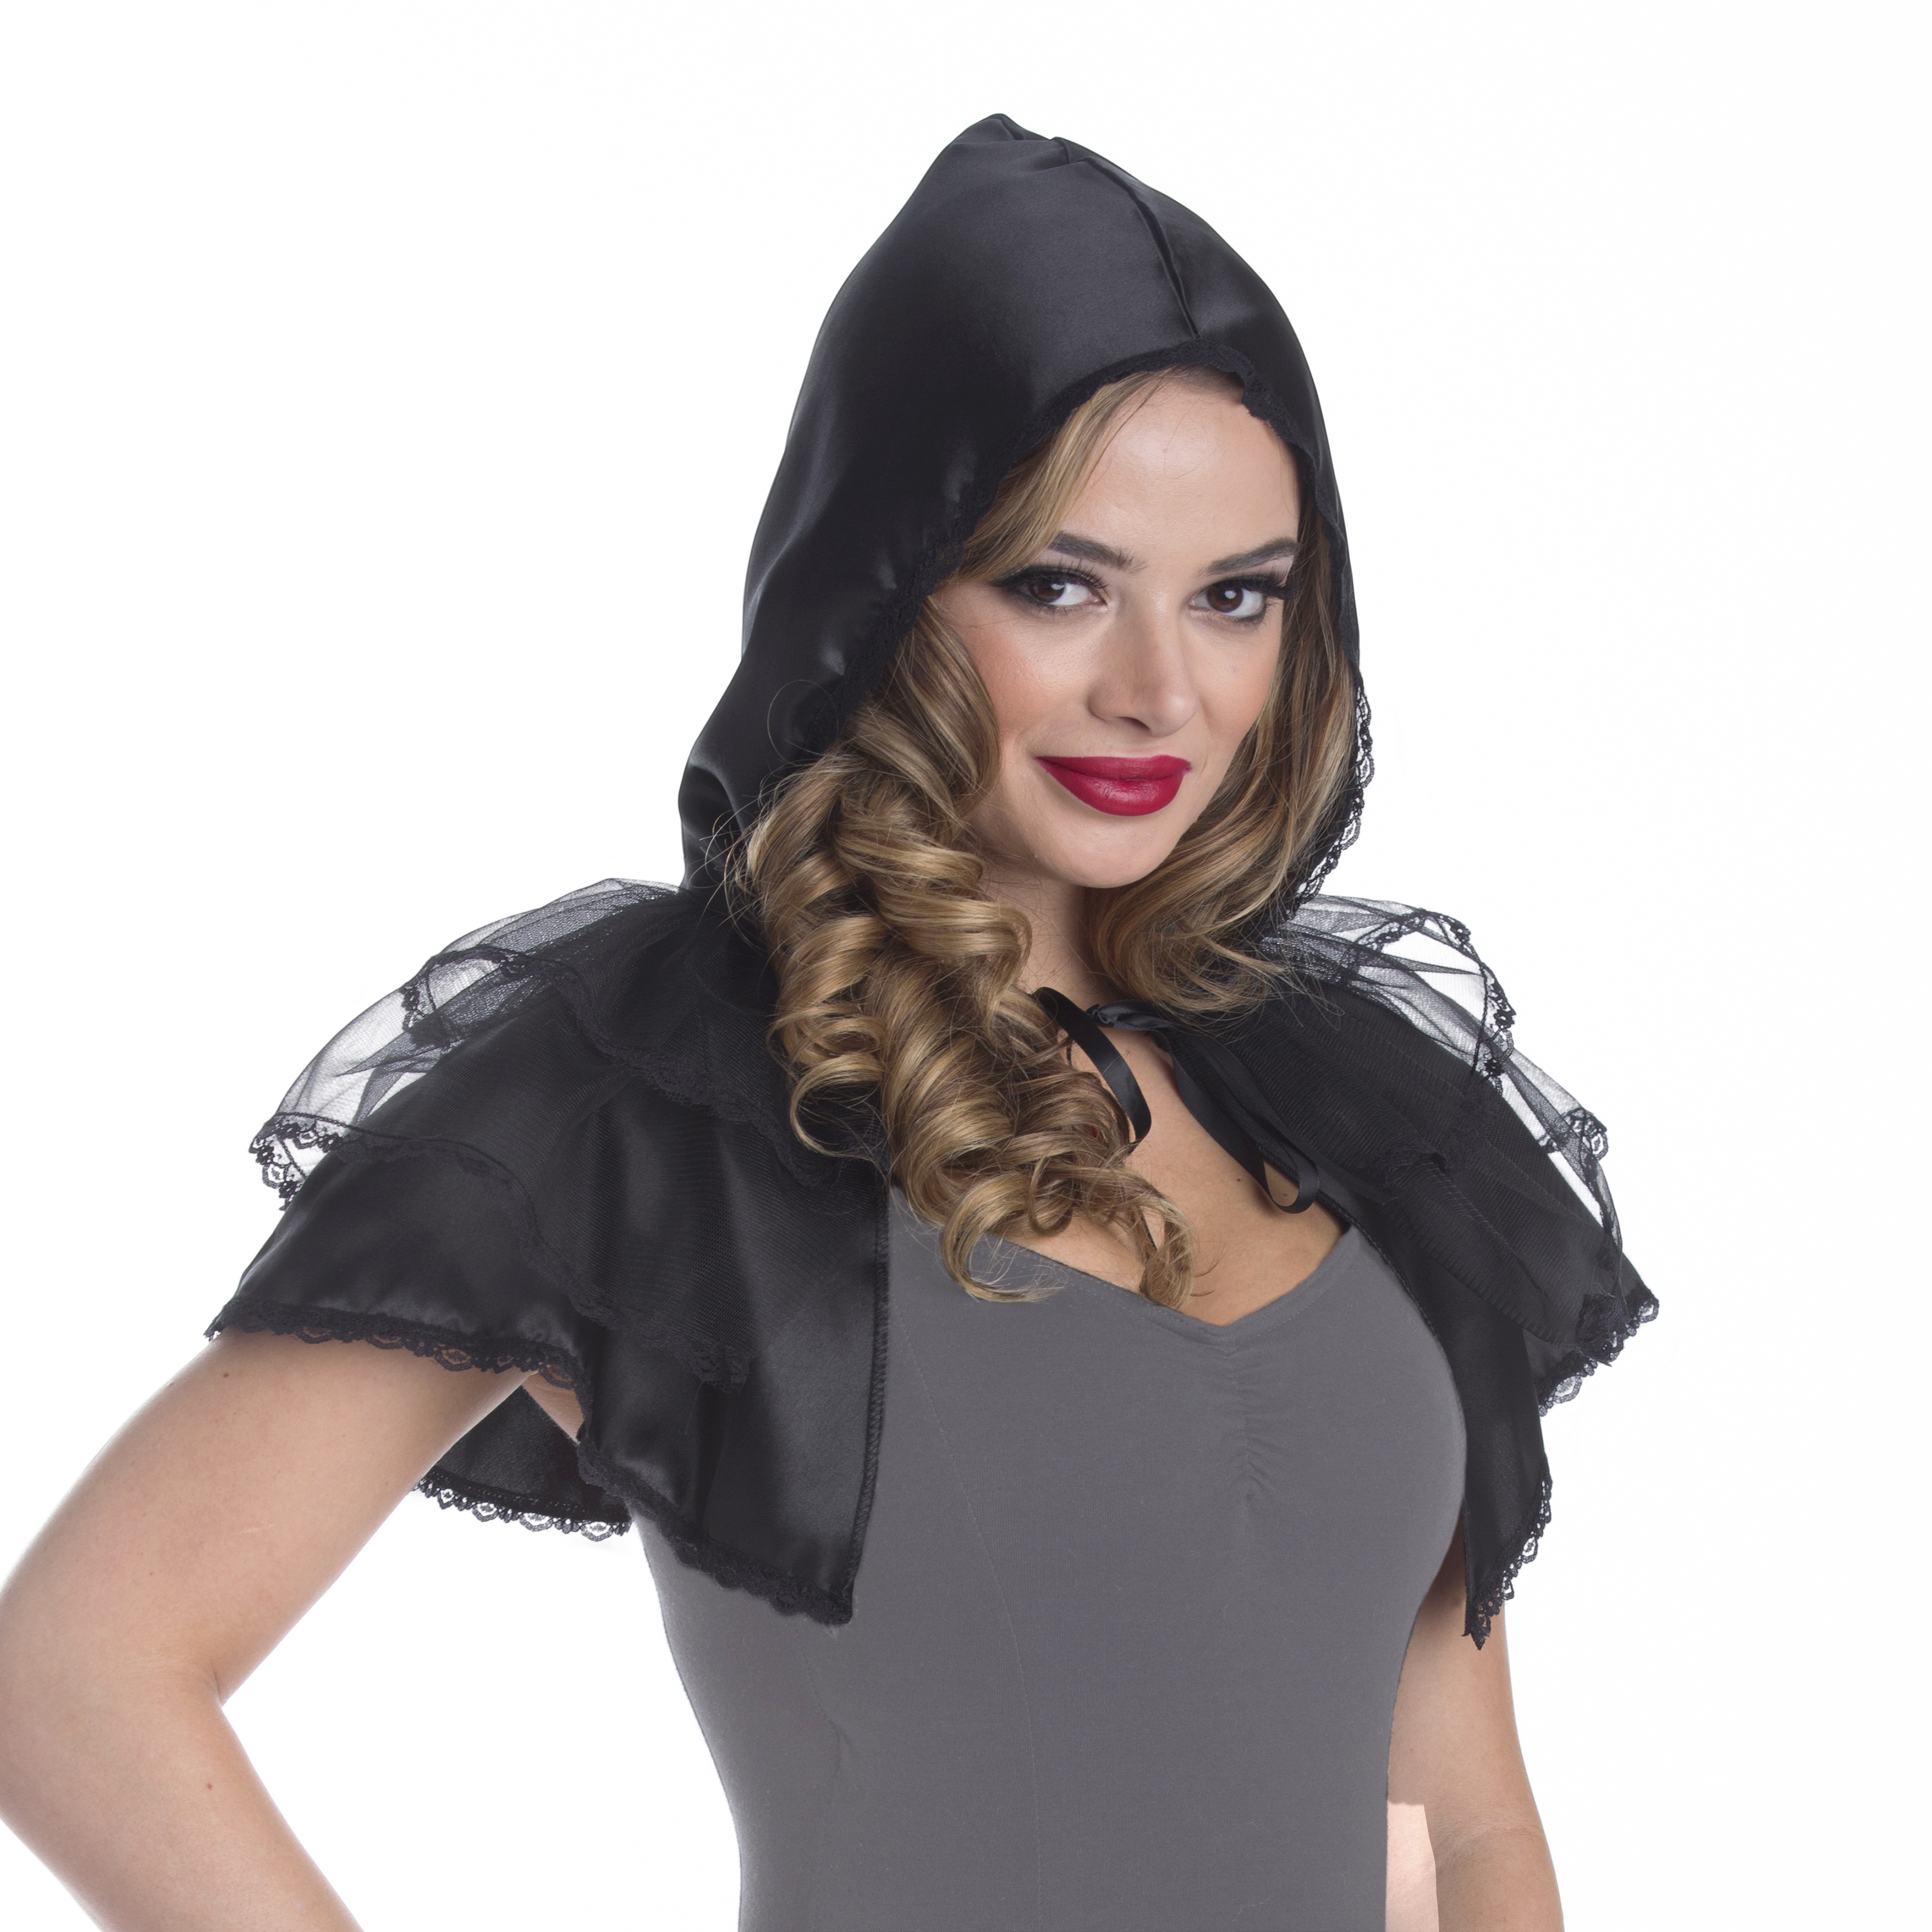 Generic Halloween Woman Black Lace Layered Cape